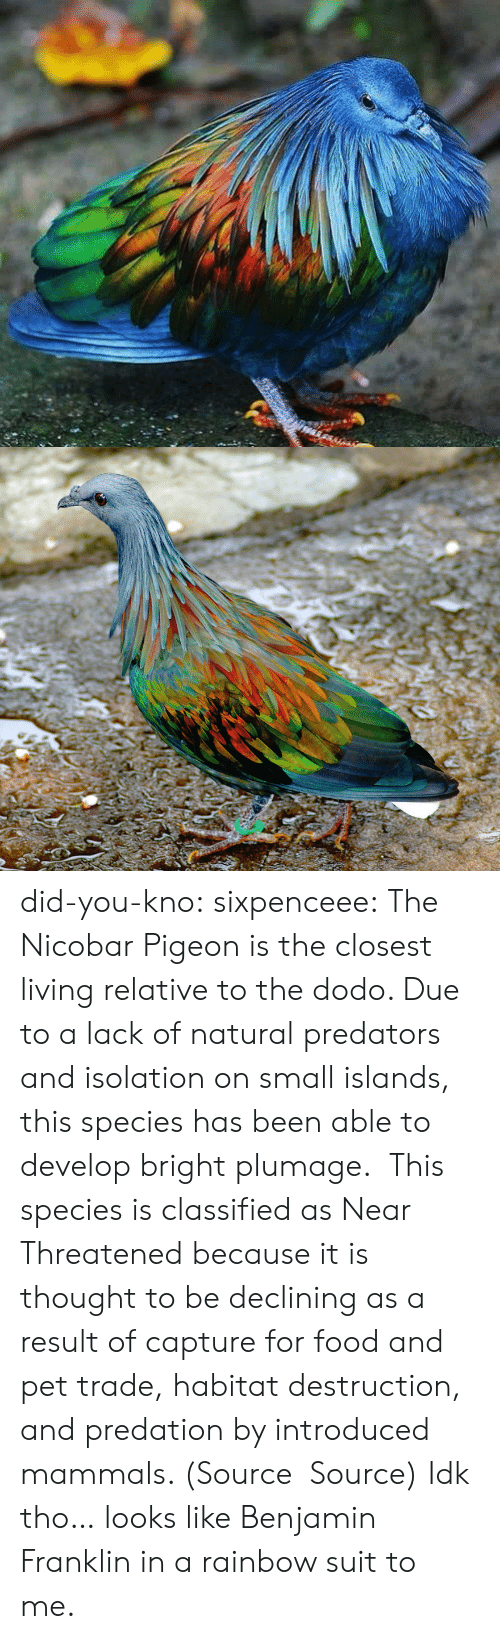 Benjamin Franklin, Food, and Target: did-you-kno:  sixpenceee:  The Nicobar Pigeon is the closest living relative to the dodo. Due to a lack of natural predators and isolation on small islands, this species has been able to develop bright plumage.  This species is classified as Near Threatened because it is thought to be declining as a result of capture for food and pet trade, habitat destruction, and predation by introduced mammals. (Source  Source)  Idk tho… looks like Benjamin Franklin in a rainbow suit to me.